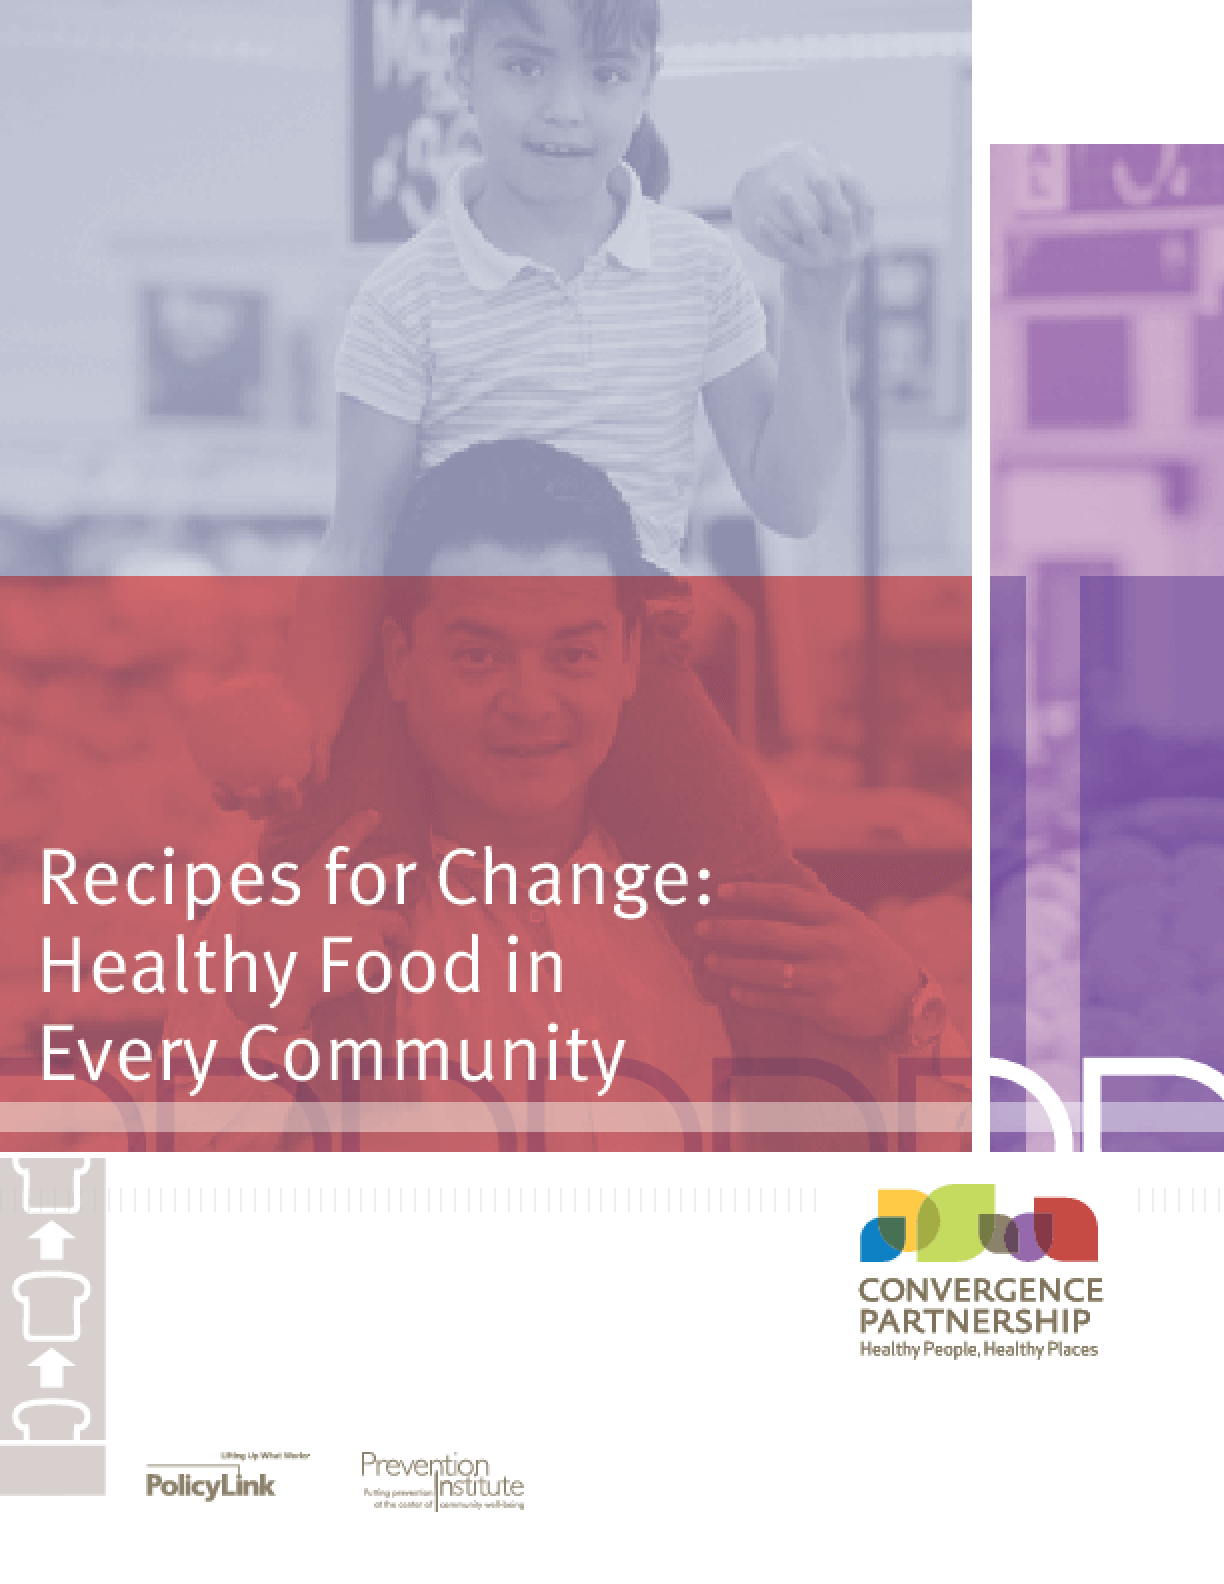 Recipes for Change: Healthy Food in Every Community